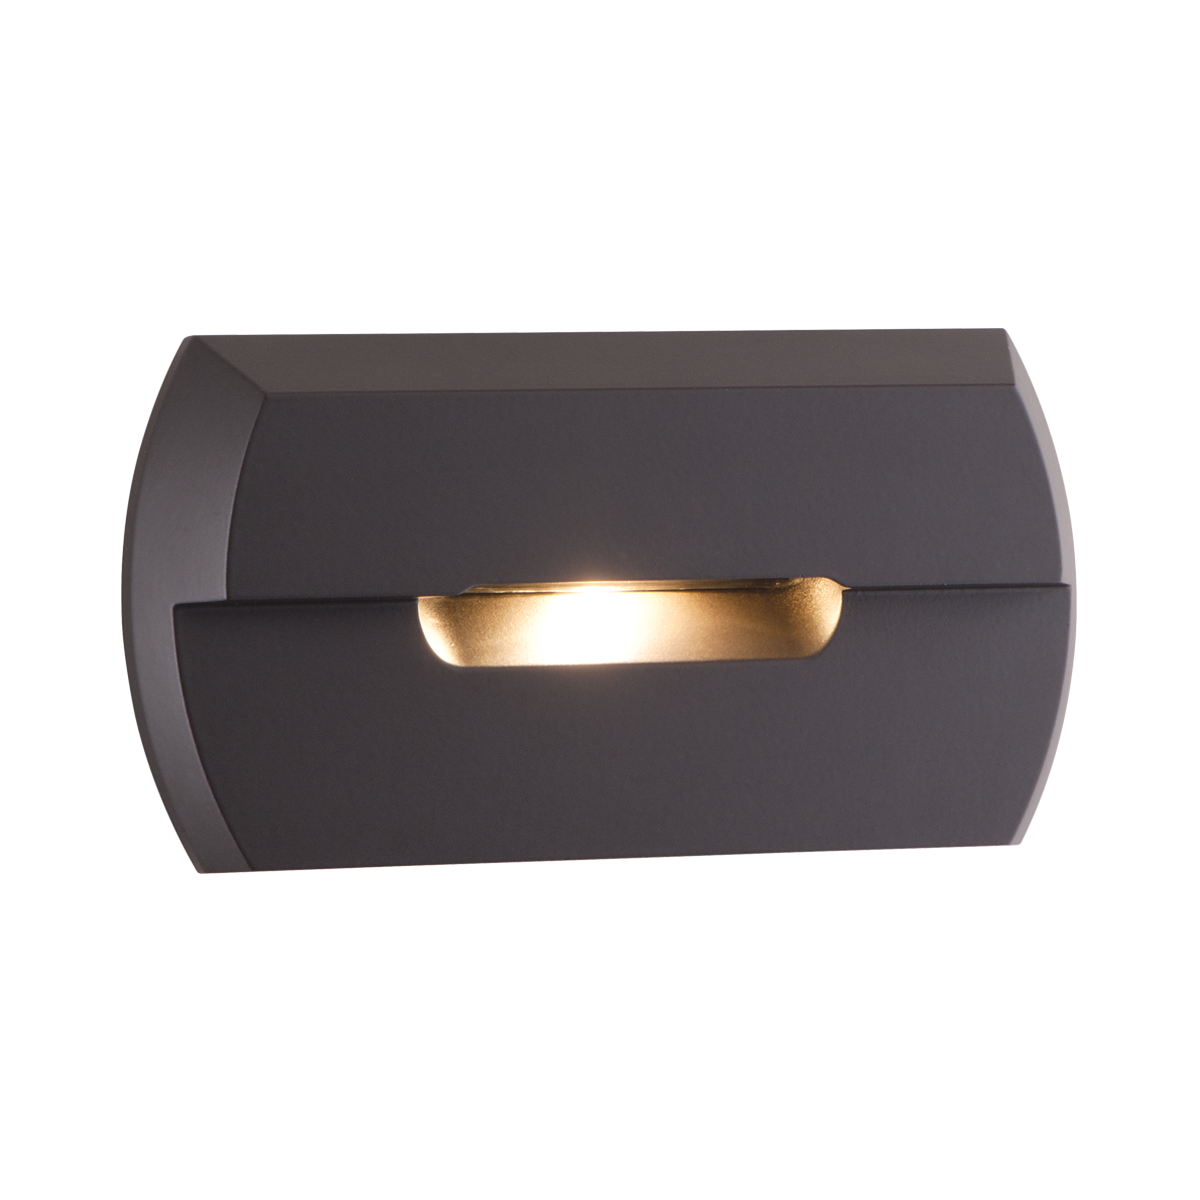 "2-1 - 2"" x 4-3 - 4"" LED Step Light, Bronze Finish"